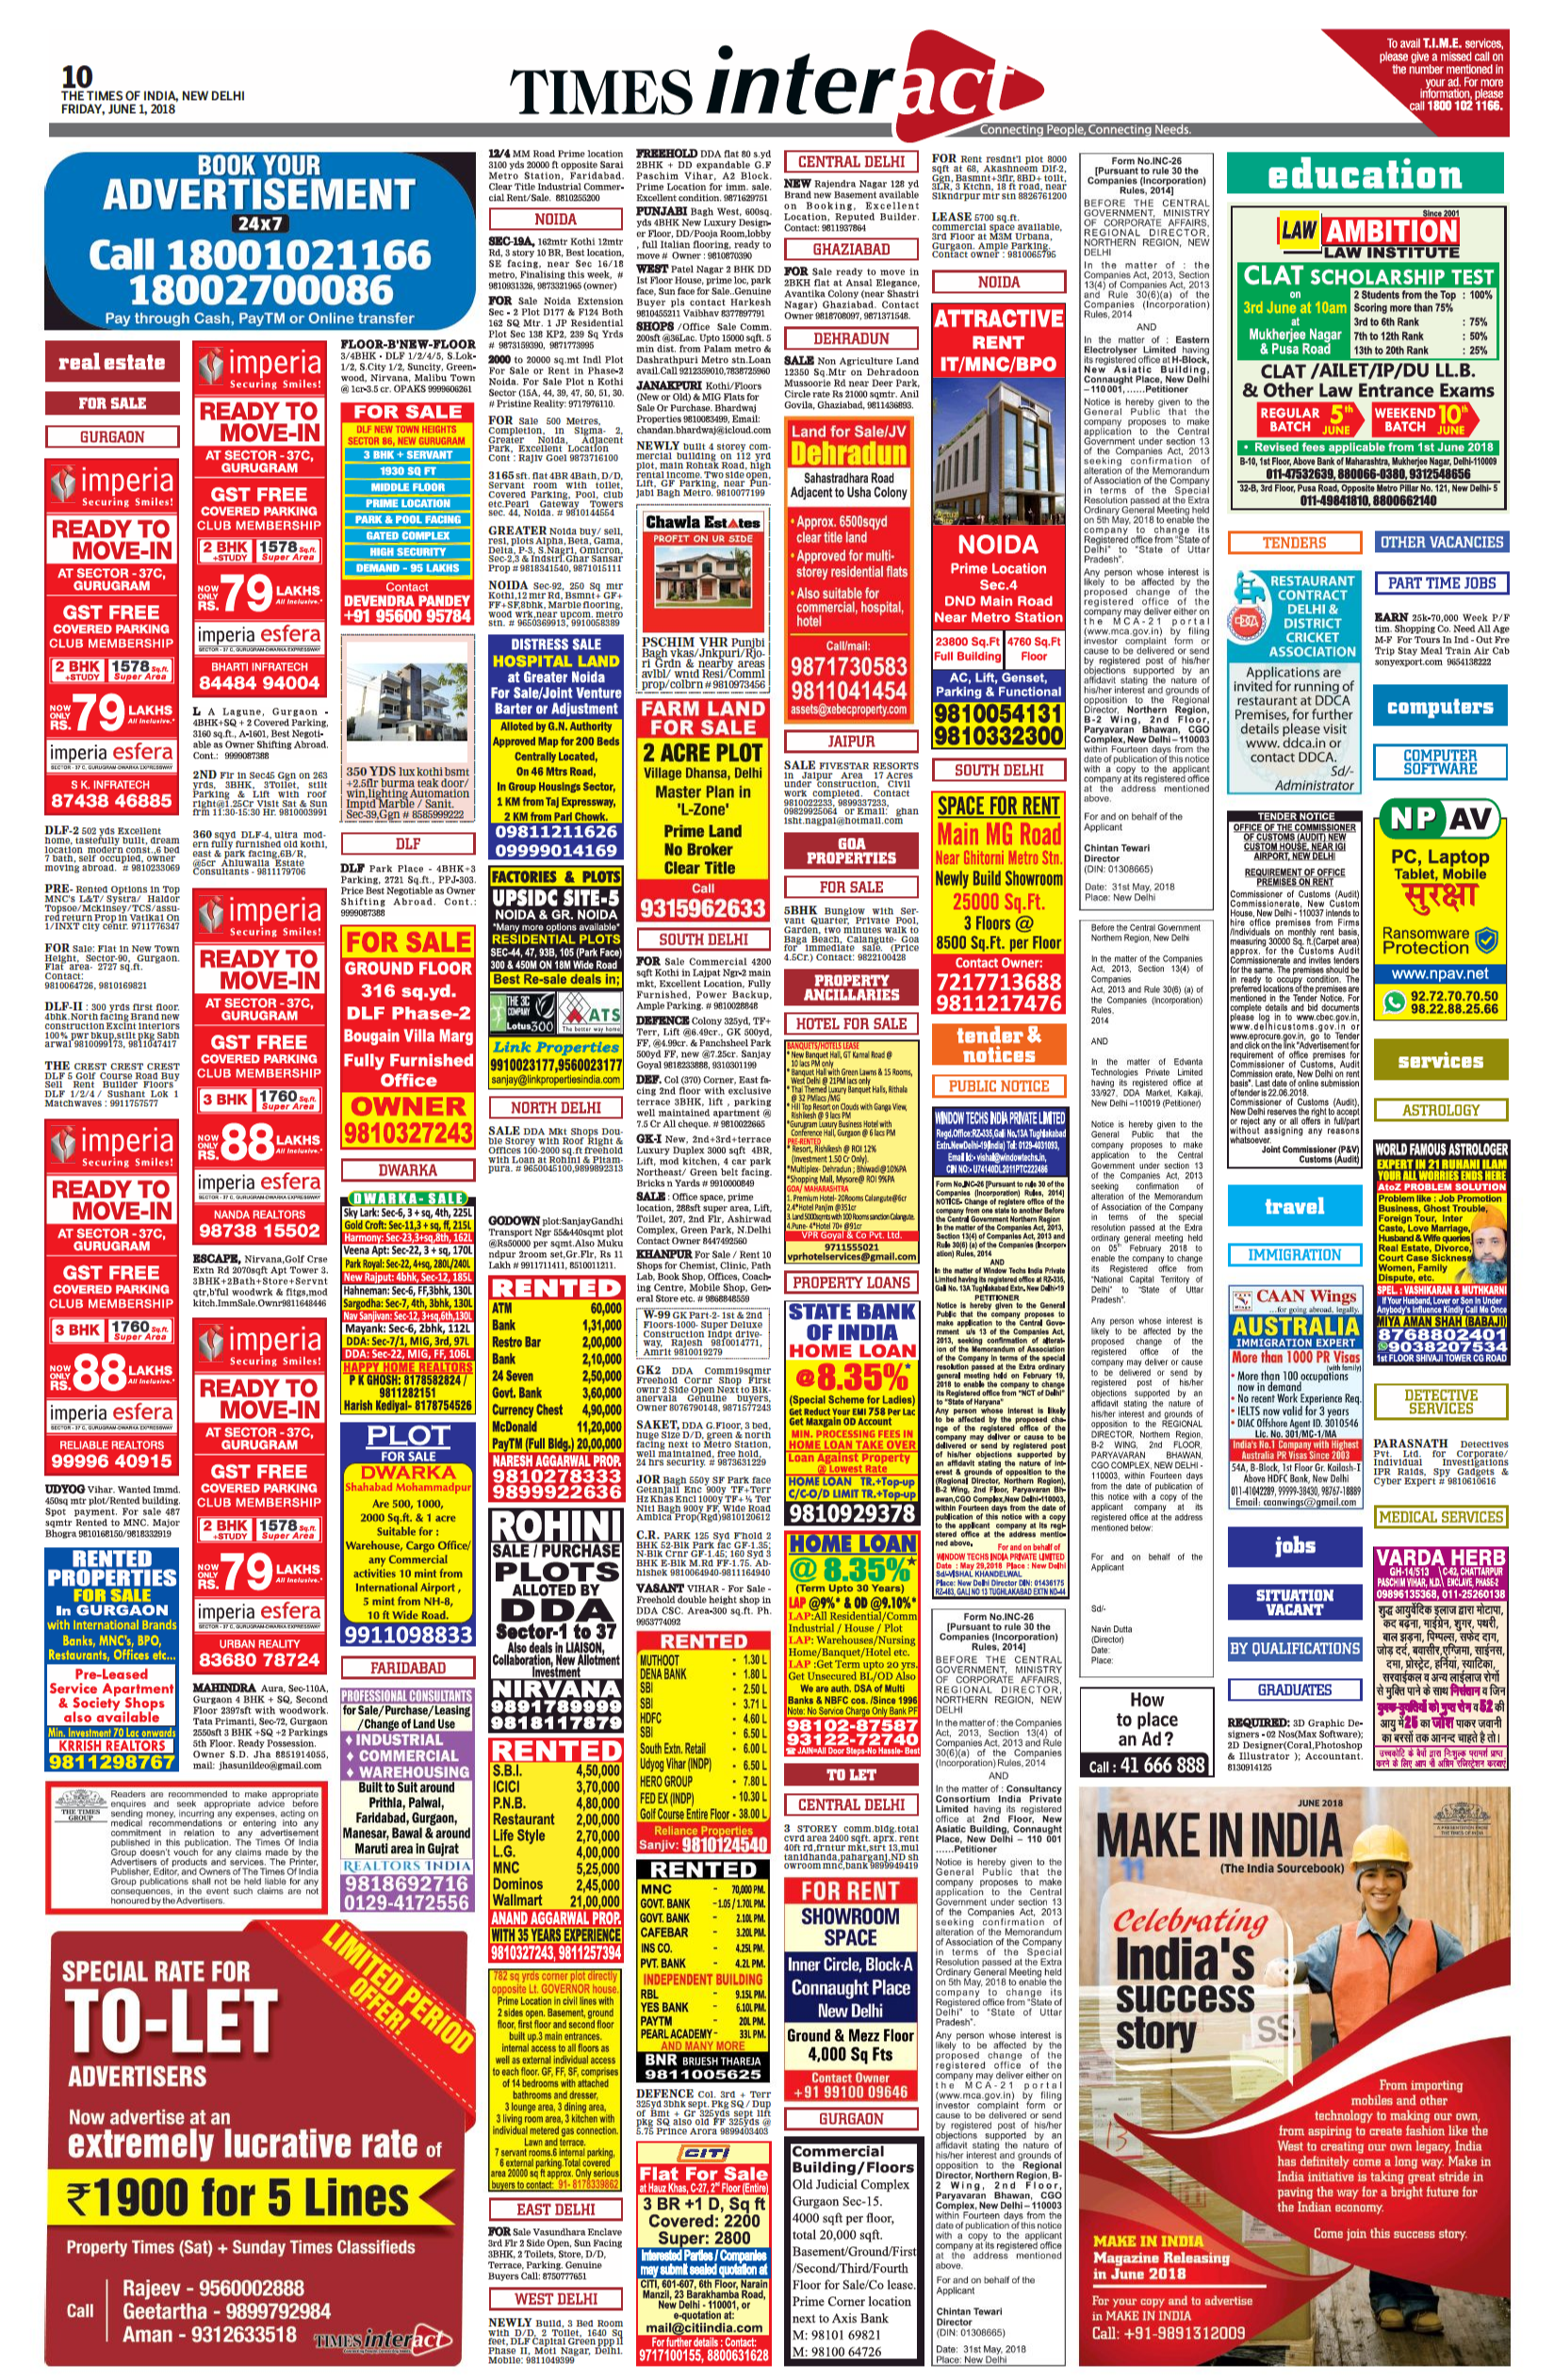 Times Of India, Pune - Classified ads Advertising